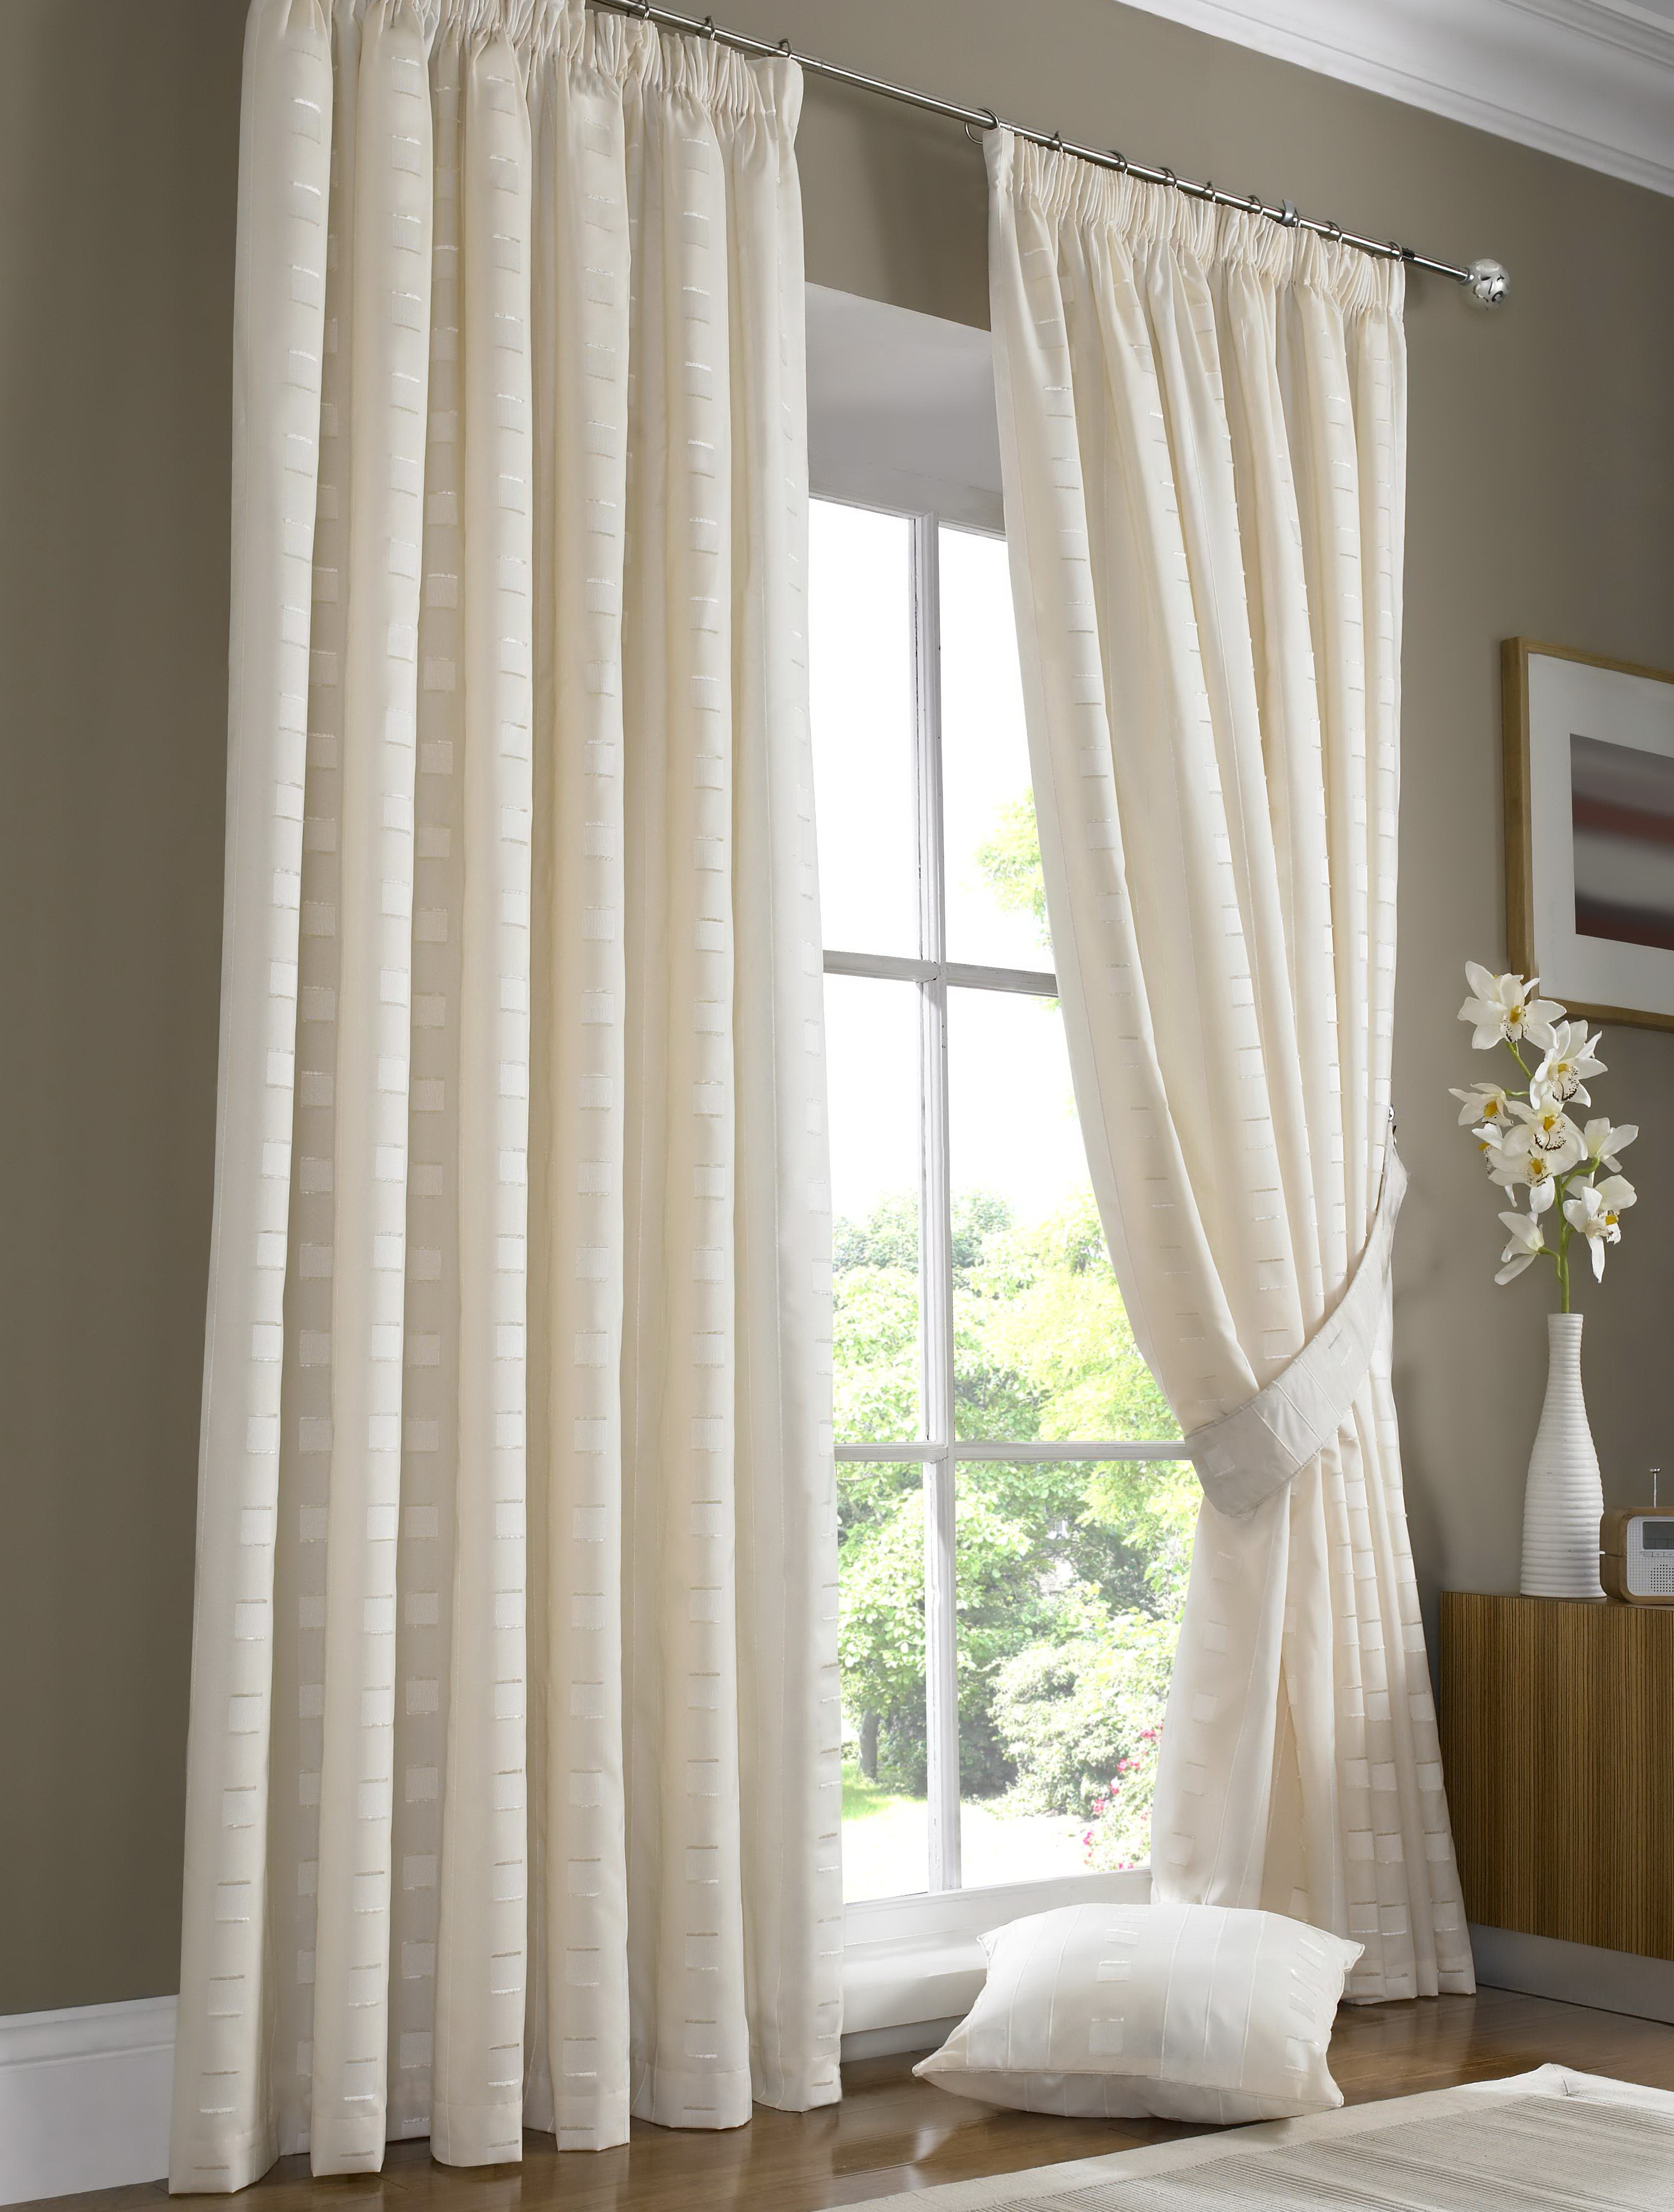 Best Place To Buy Curtains London Home Design Ideas